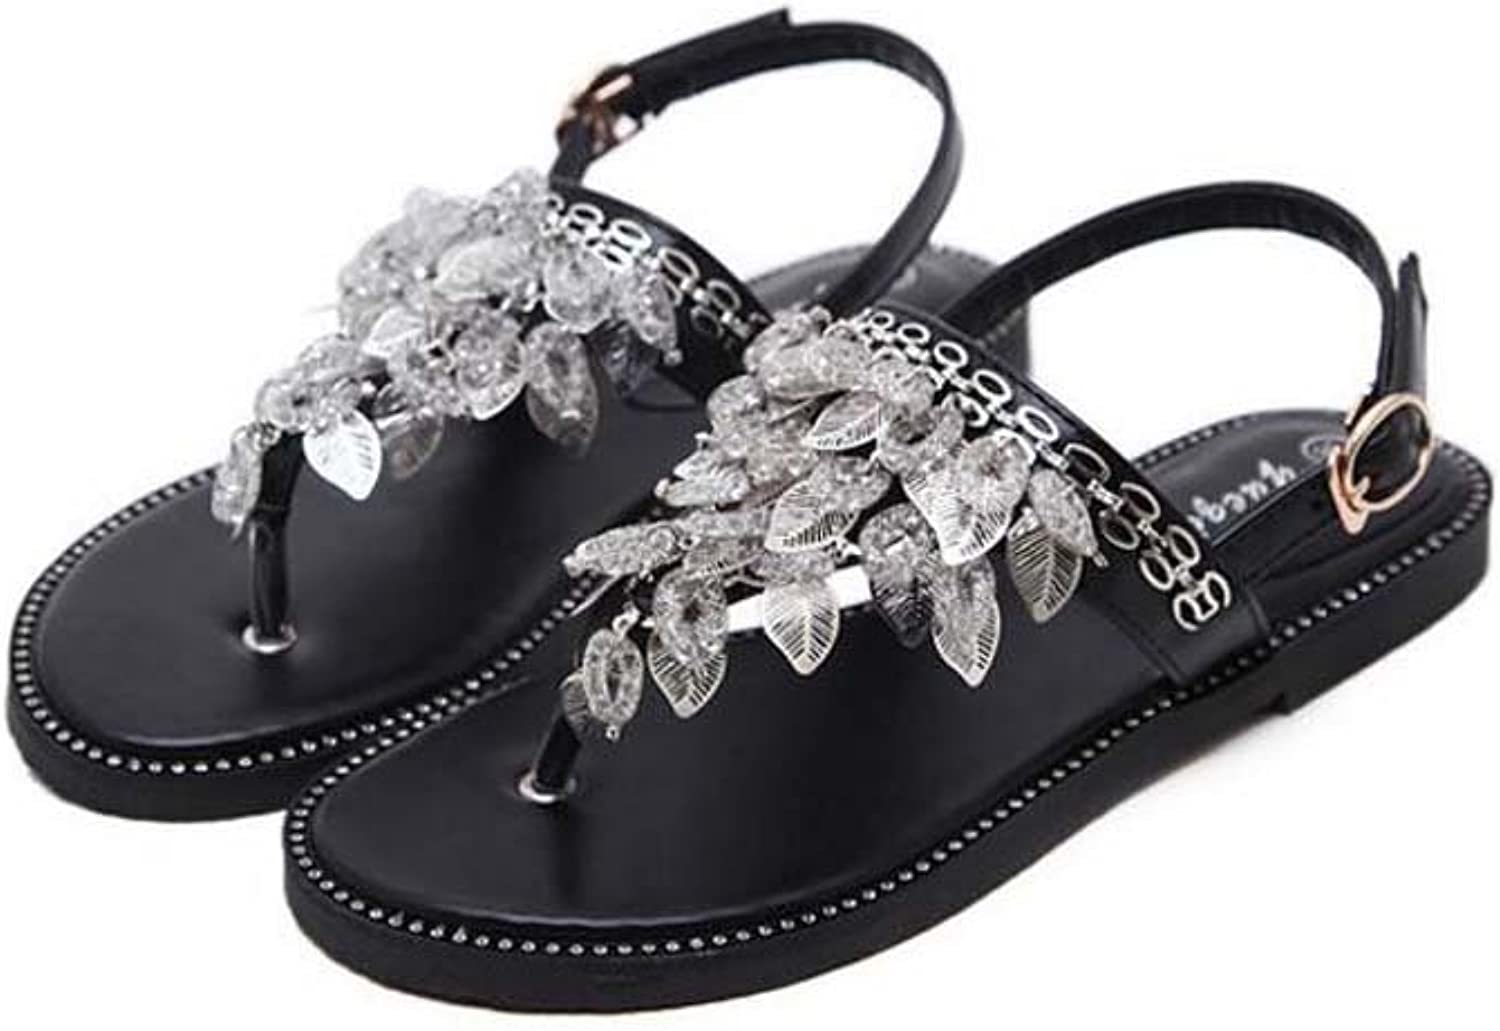 Women Clip Toe Flat Sandals Comforty Slingback Tessel Rivets Belt Buckle Beach Holiday shoes Casual shoes Eu Size 34-40